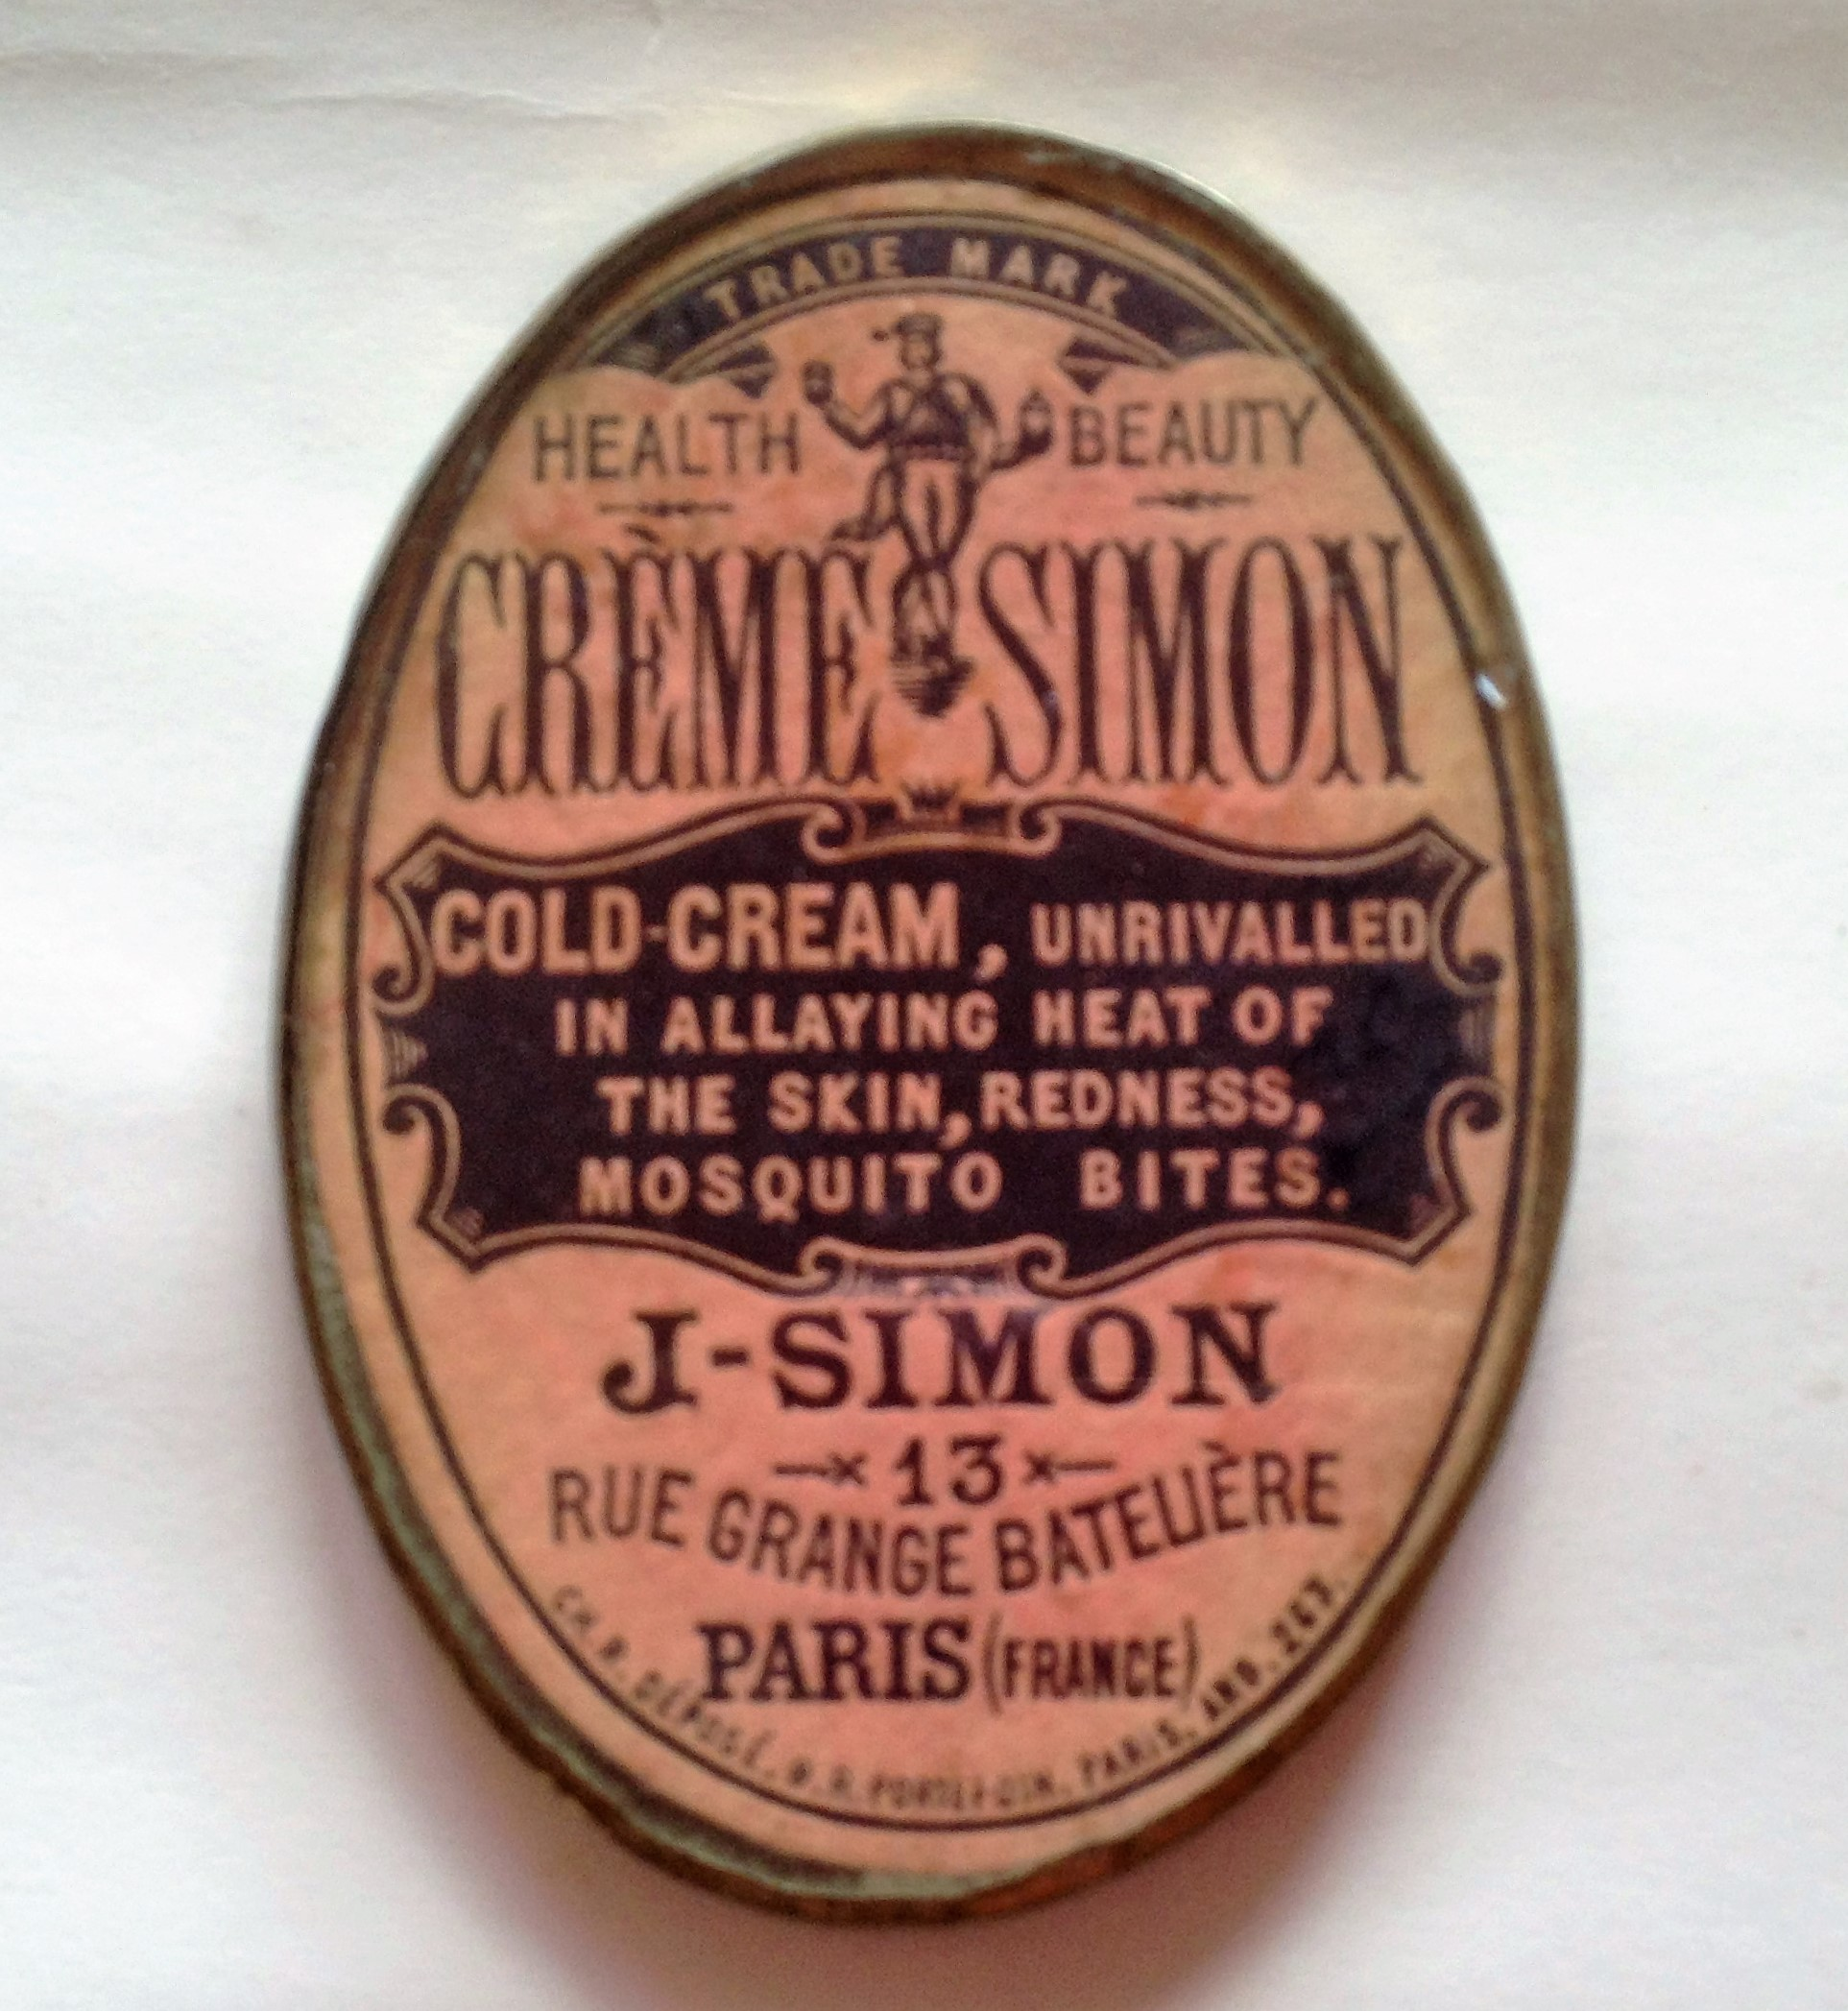 Creme Simon - pocket mirror